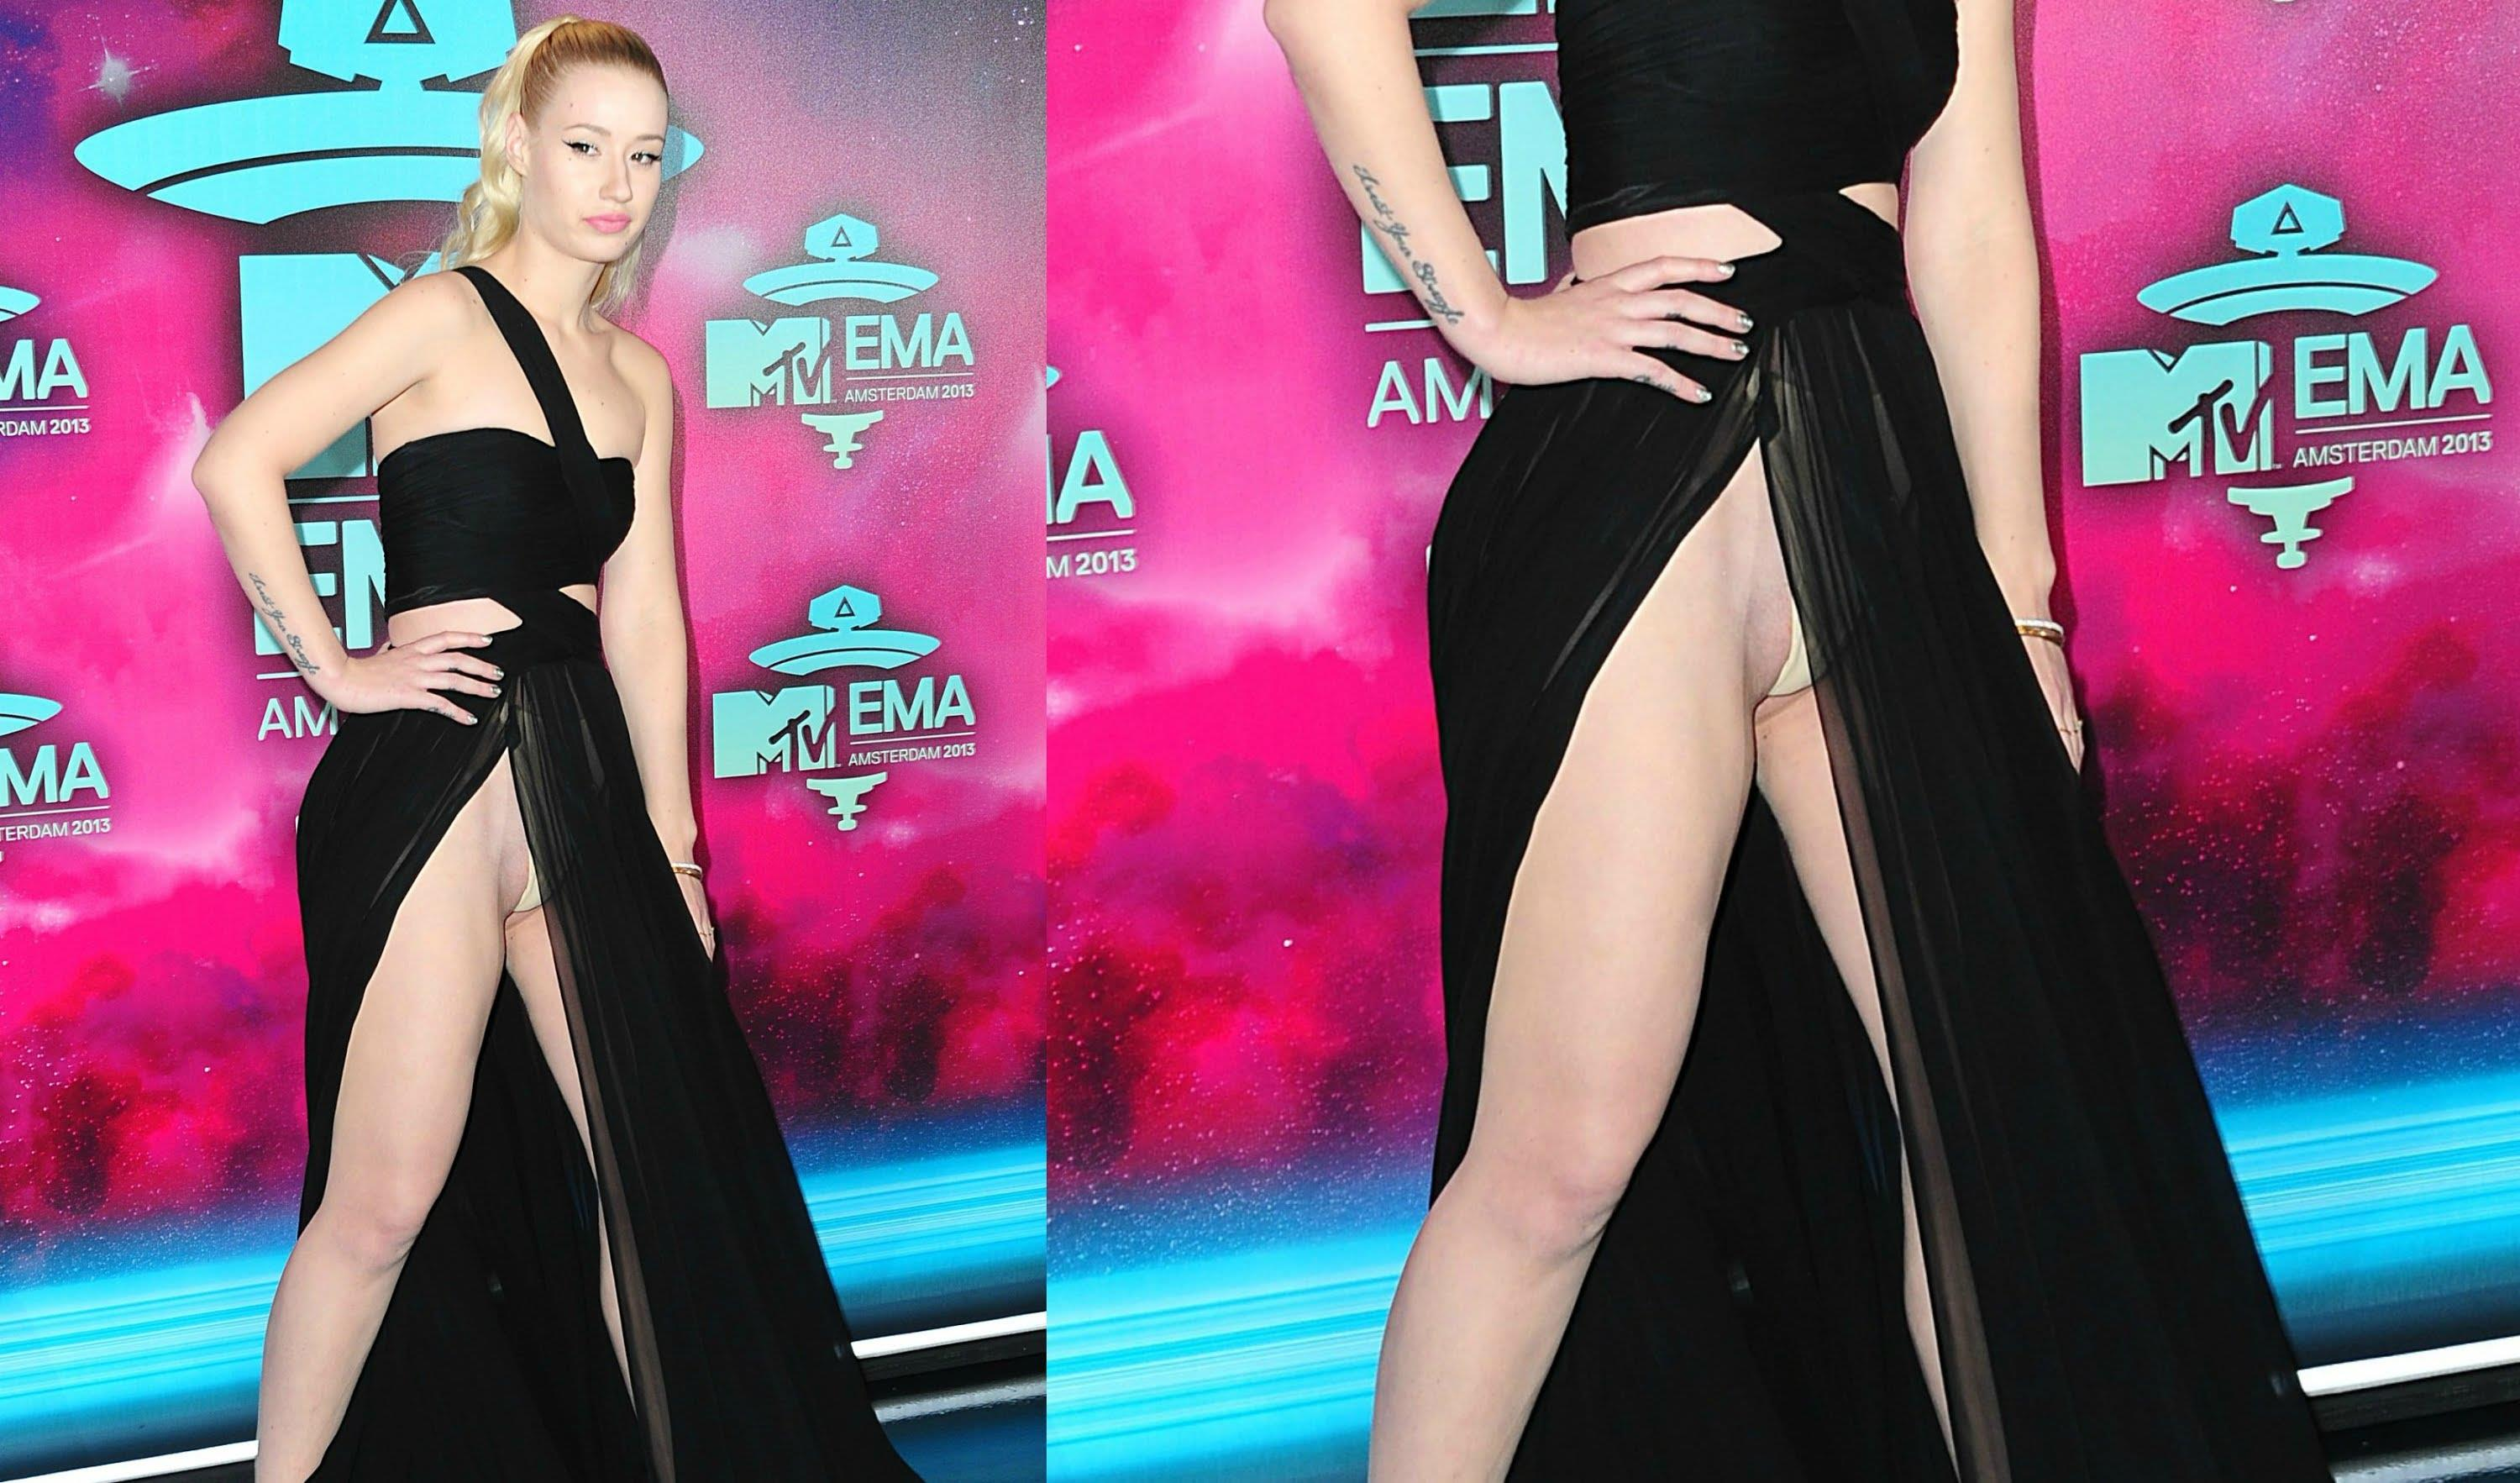 Mtv Emas 2013 Iggy Azalea Major Wardrobe Malfunction 11316 as well Party Theme Ideas besides Party Like A Hollywood Star as well Pasteles De 15 Anos Tematicos further Fun Foods For Teens Kids. on oscar hollywood cakes